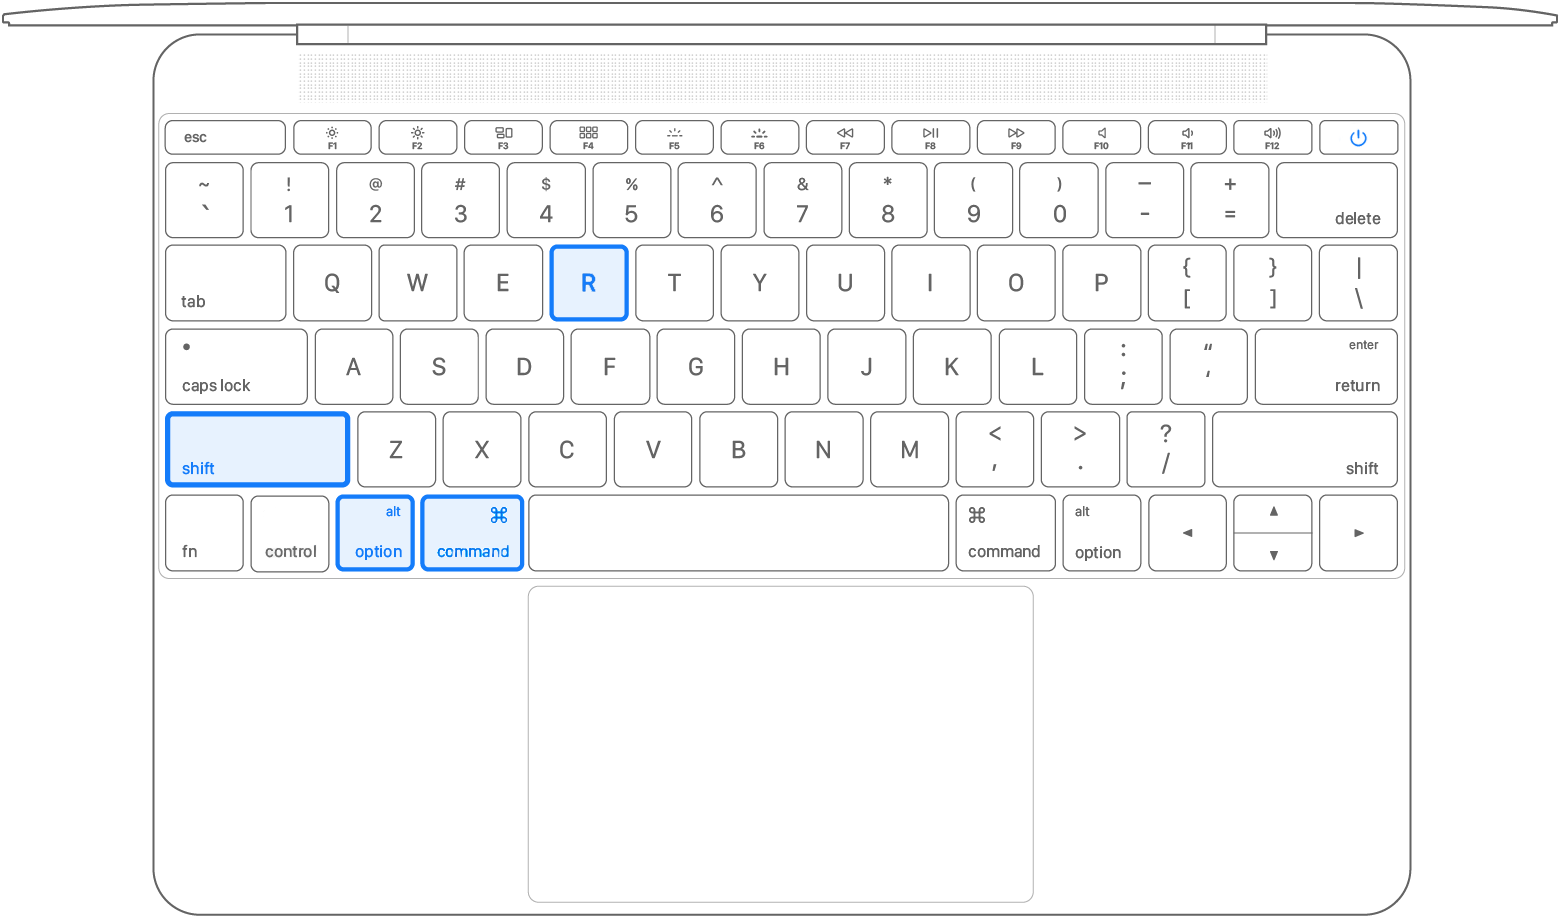 macbook-keyboard-diag-mac-drive